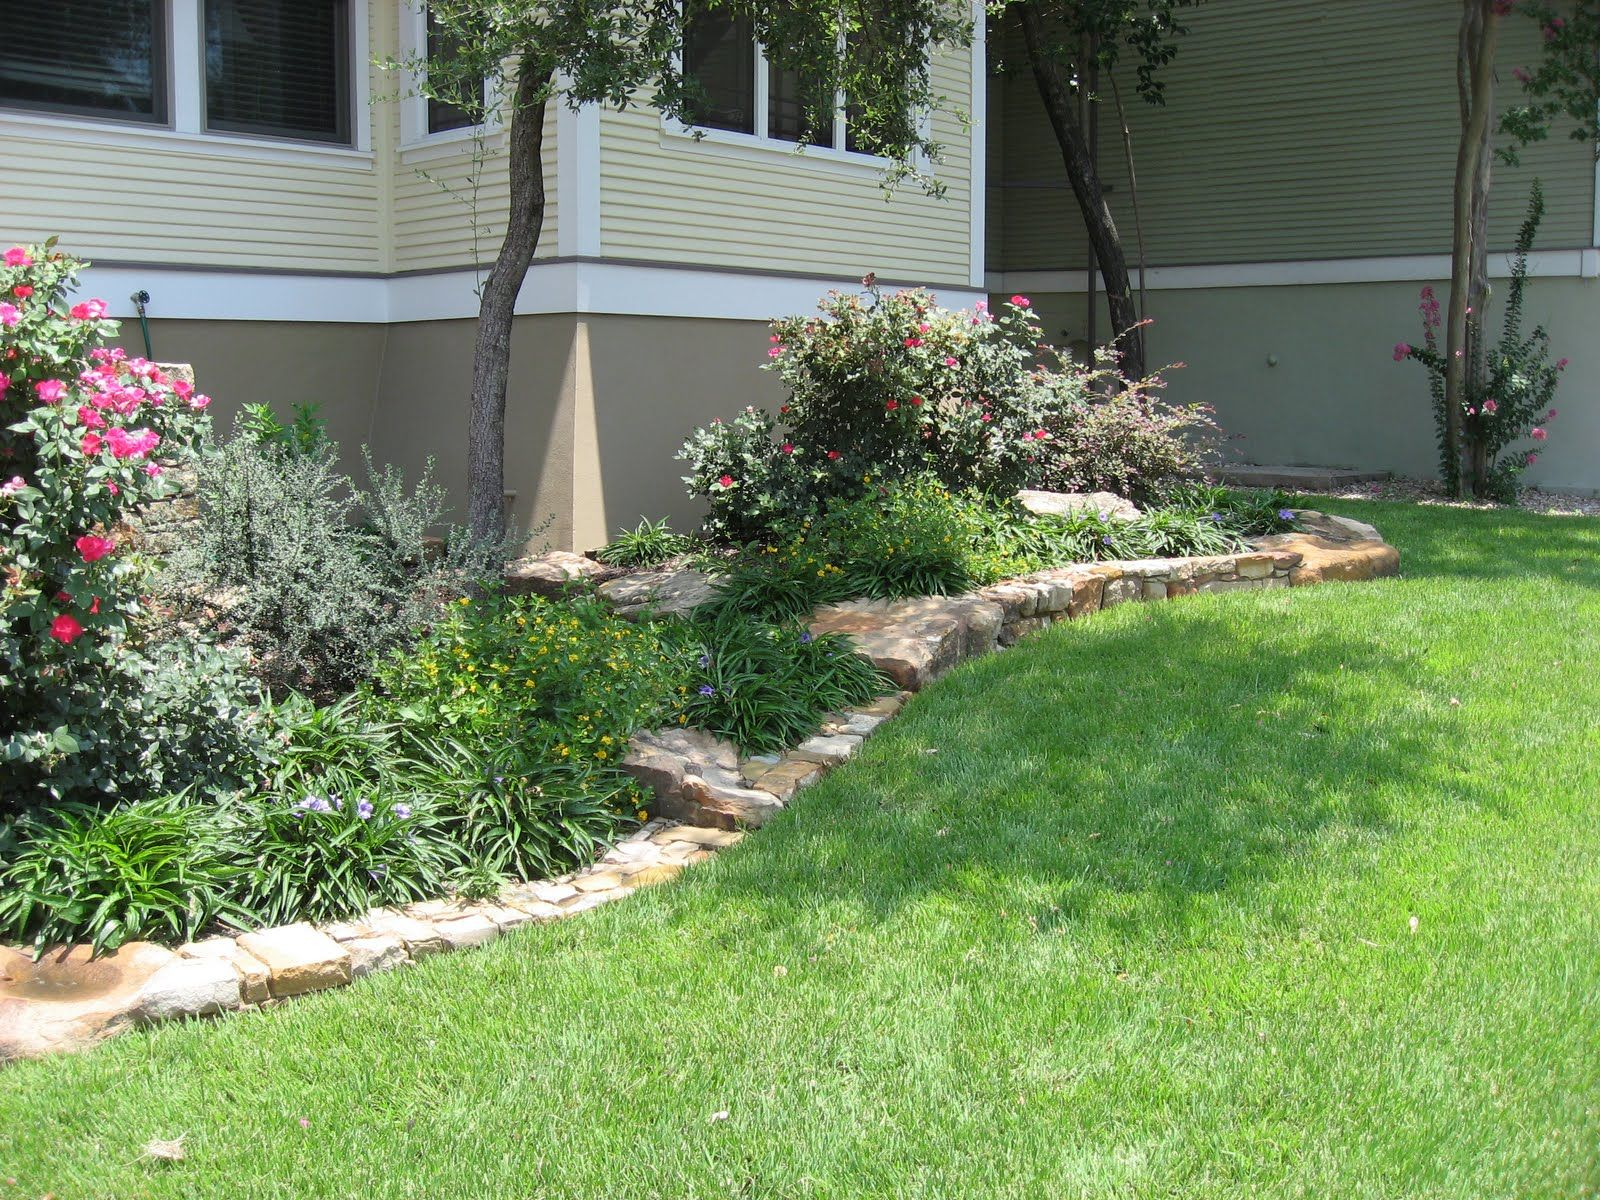 Natural Stone Landscape Edging and landscape edging stone